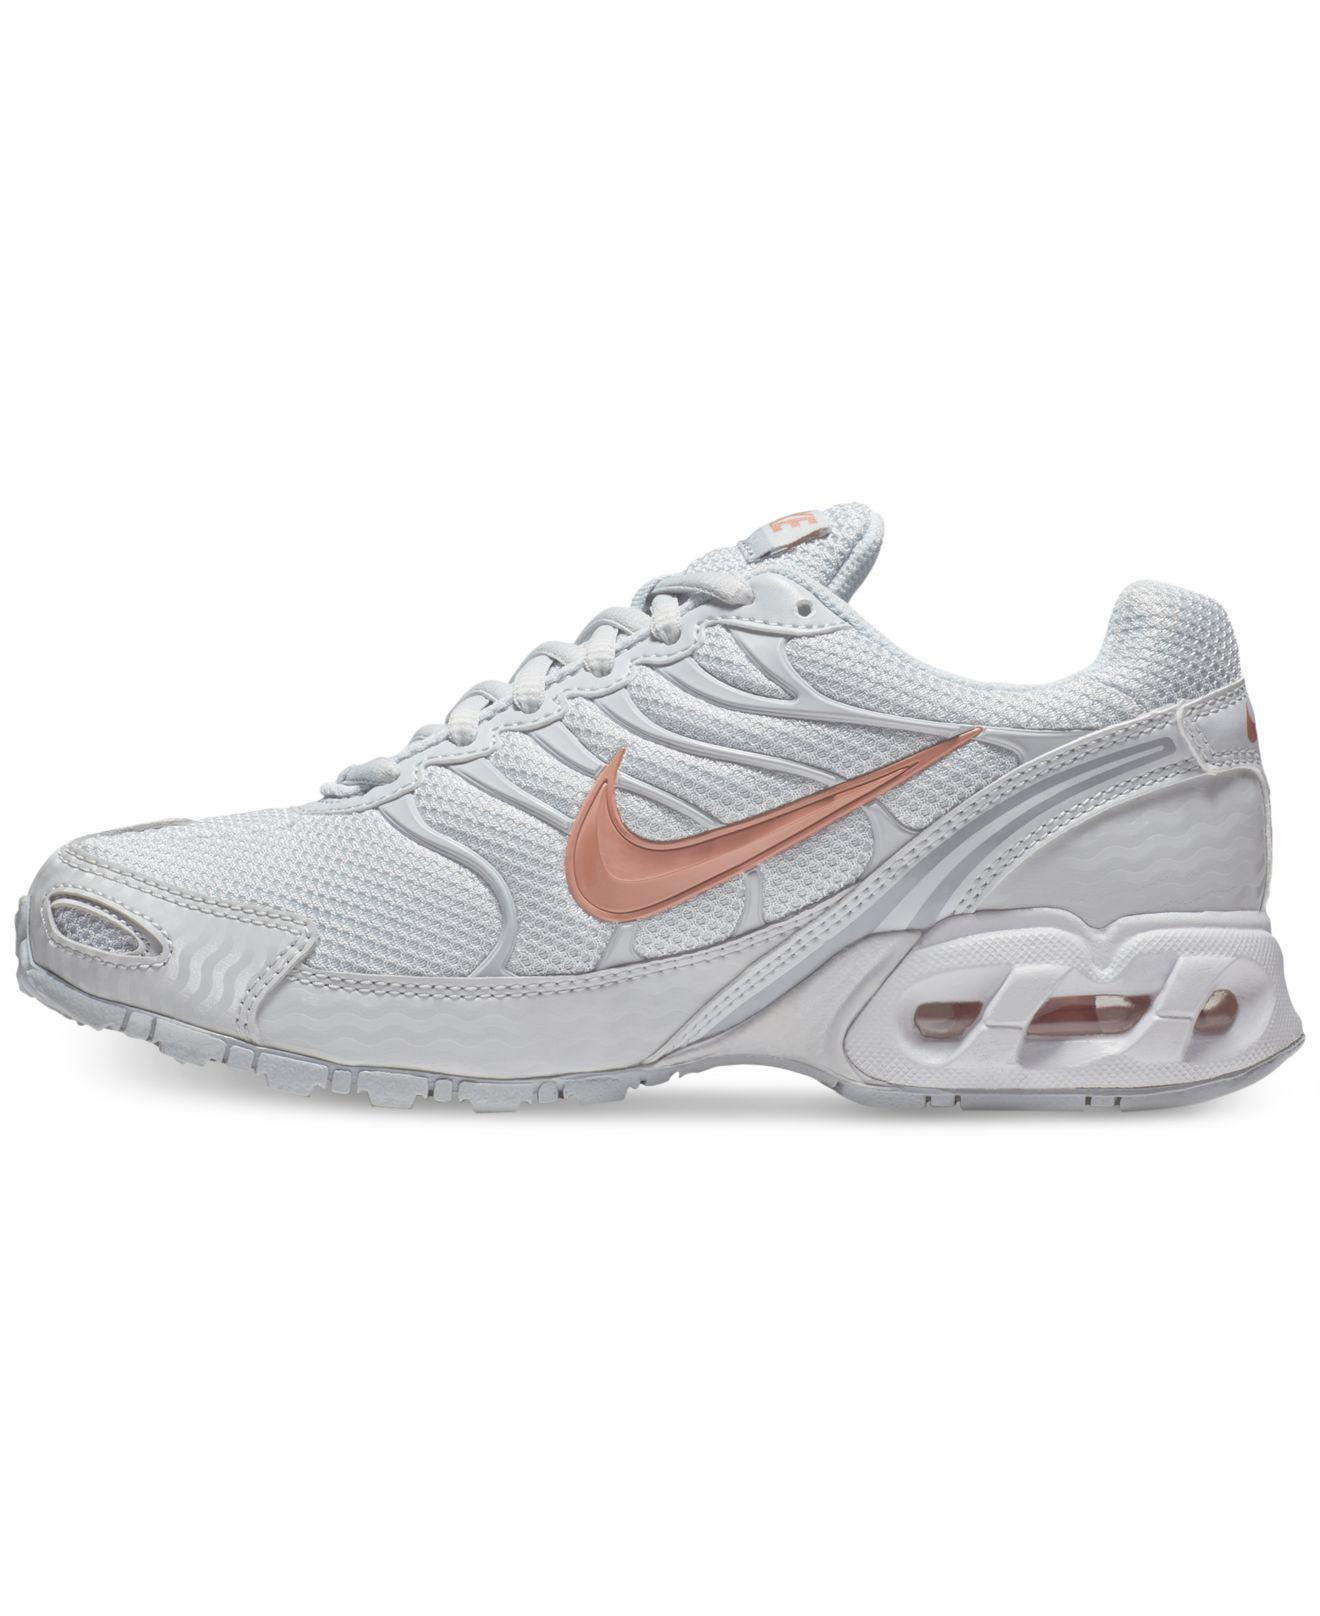 a533619d6411 ... sweden lyst nike air max torch 4 running sneakers from finish line in  gray 845cf cb51f